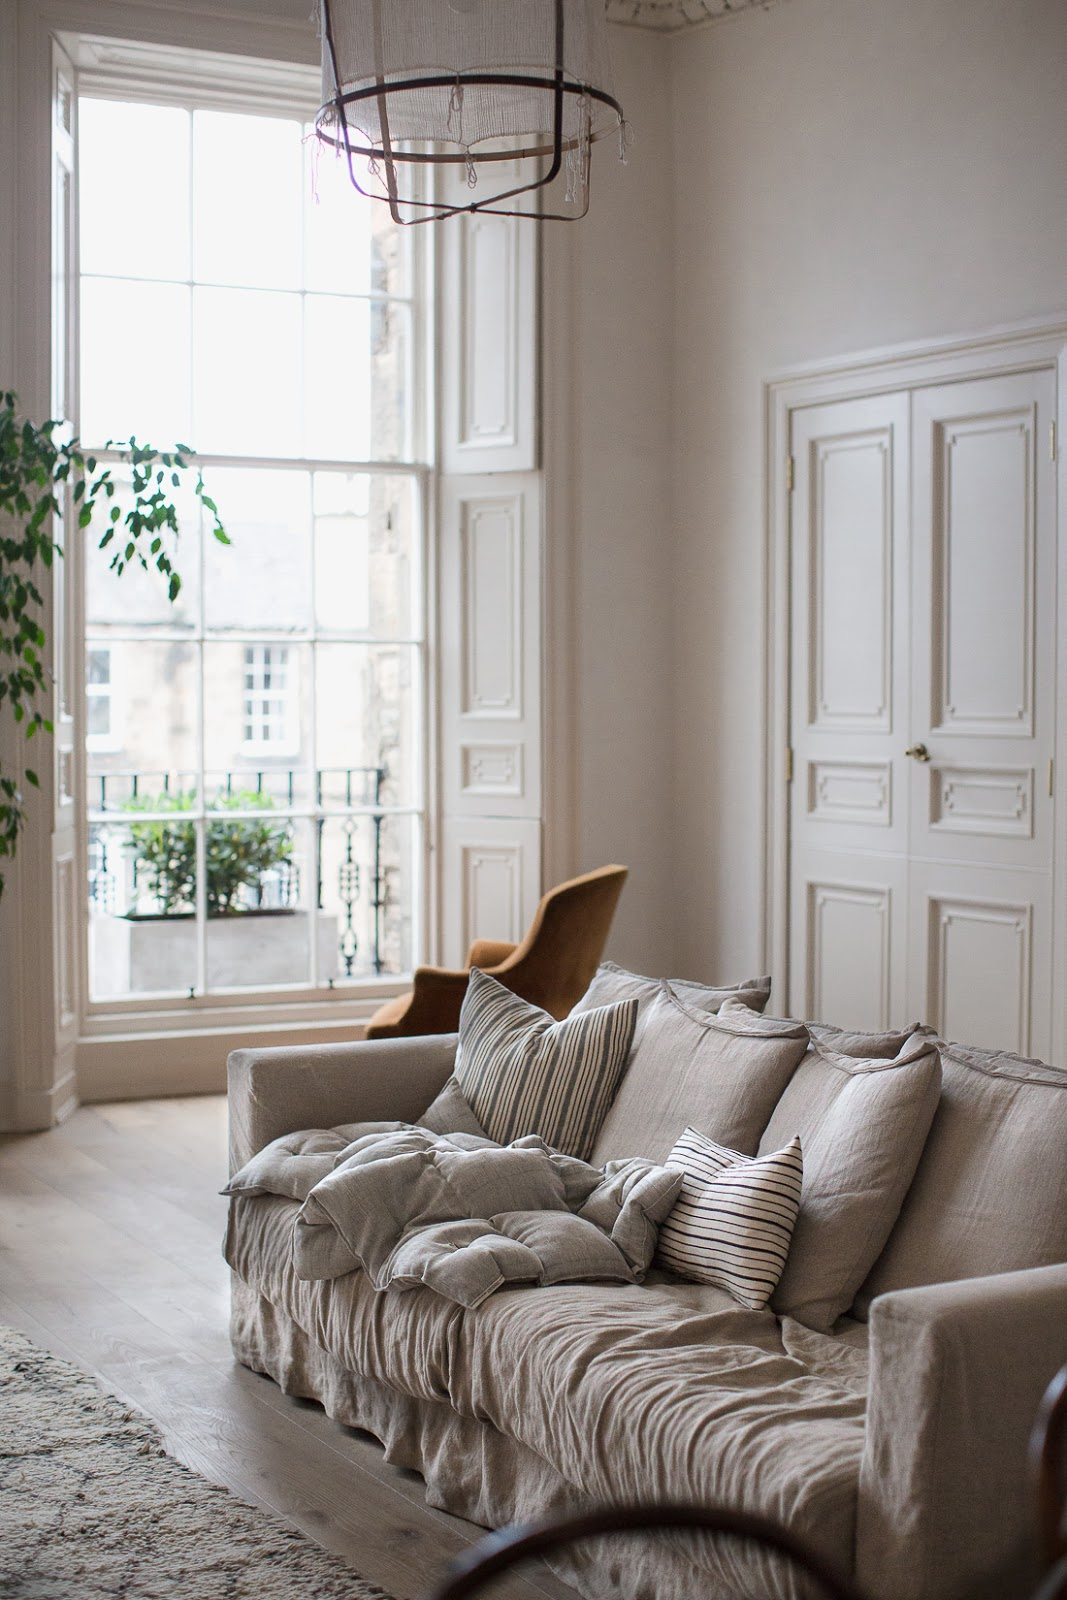 ilaria fatone - a comforting and minimal home - the living-room